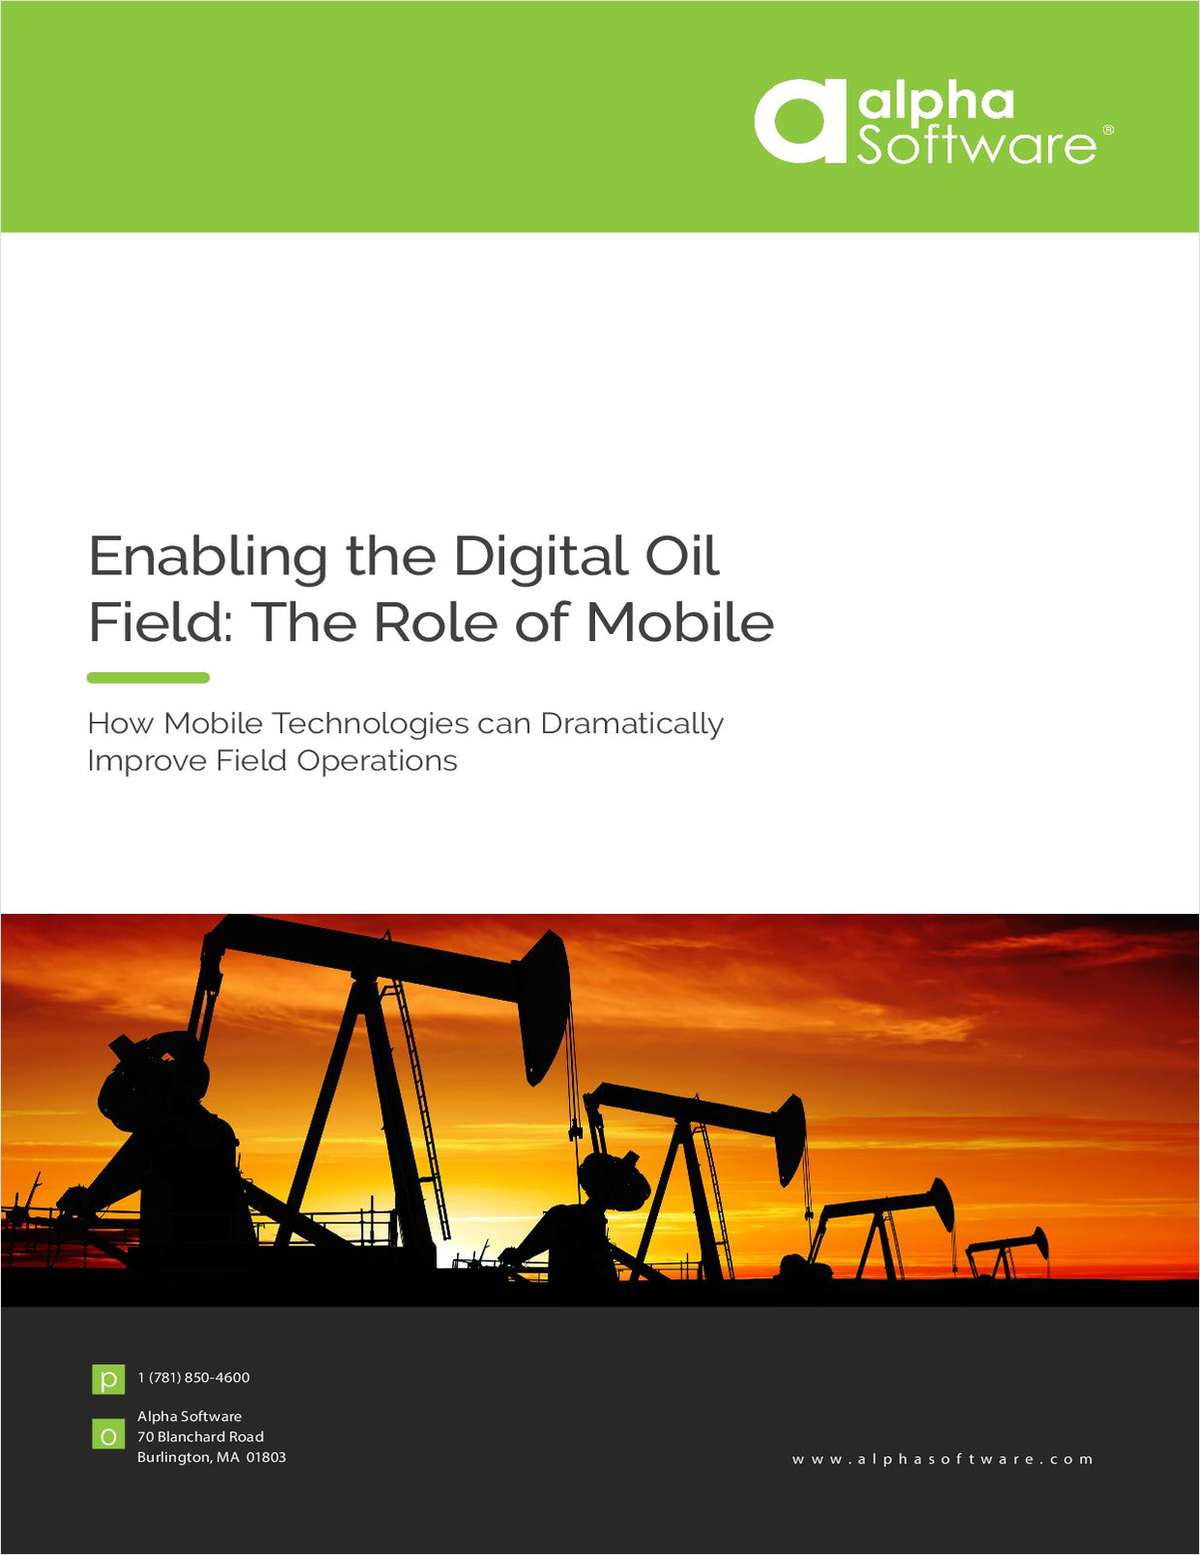 Enabling the Digital Oil Field: The Role of Mobile